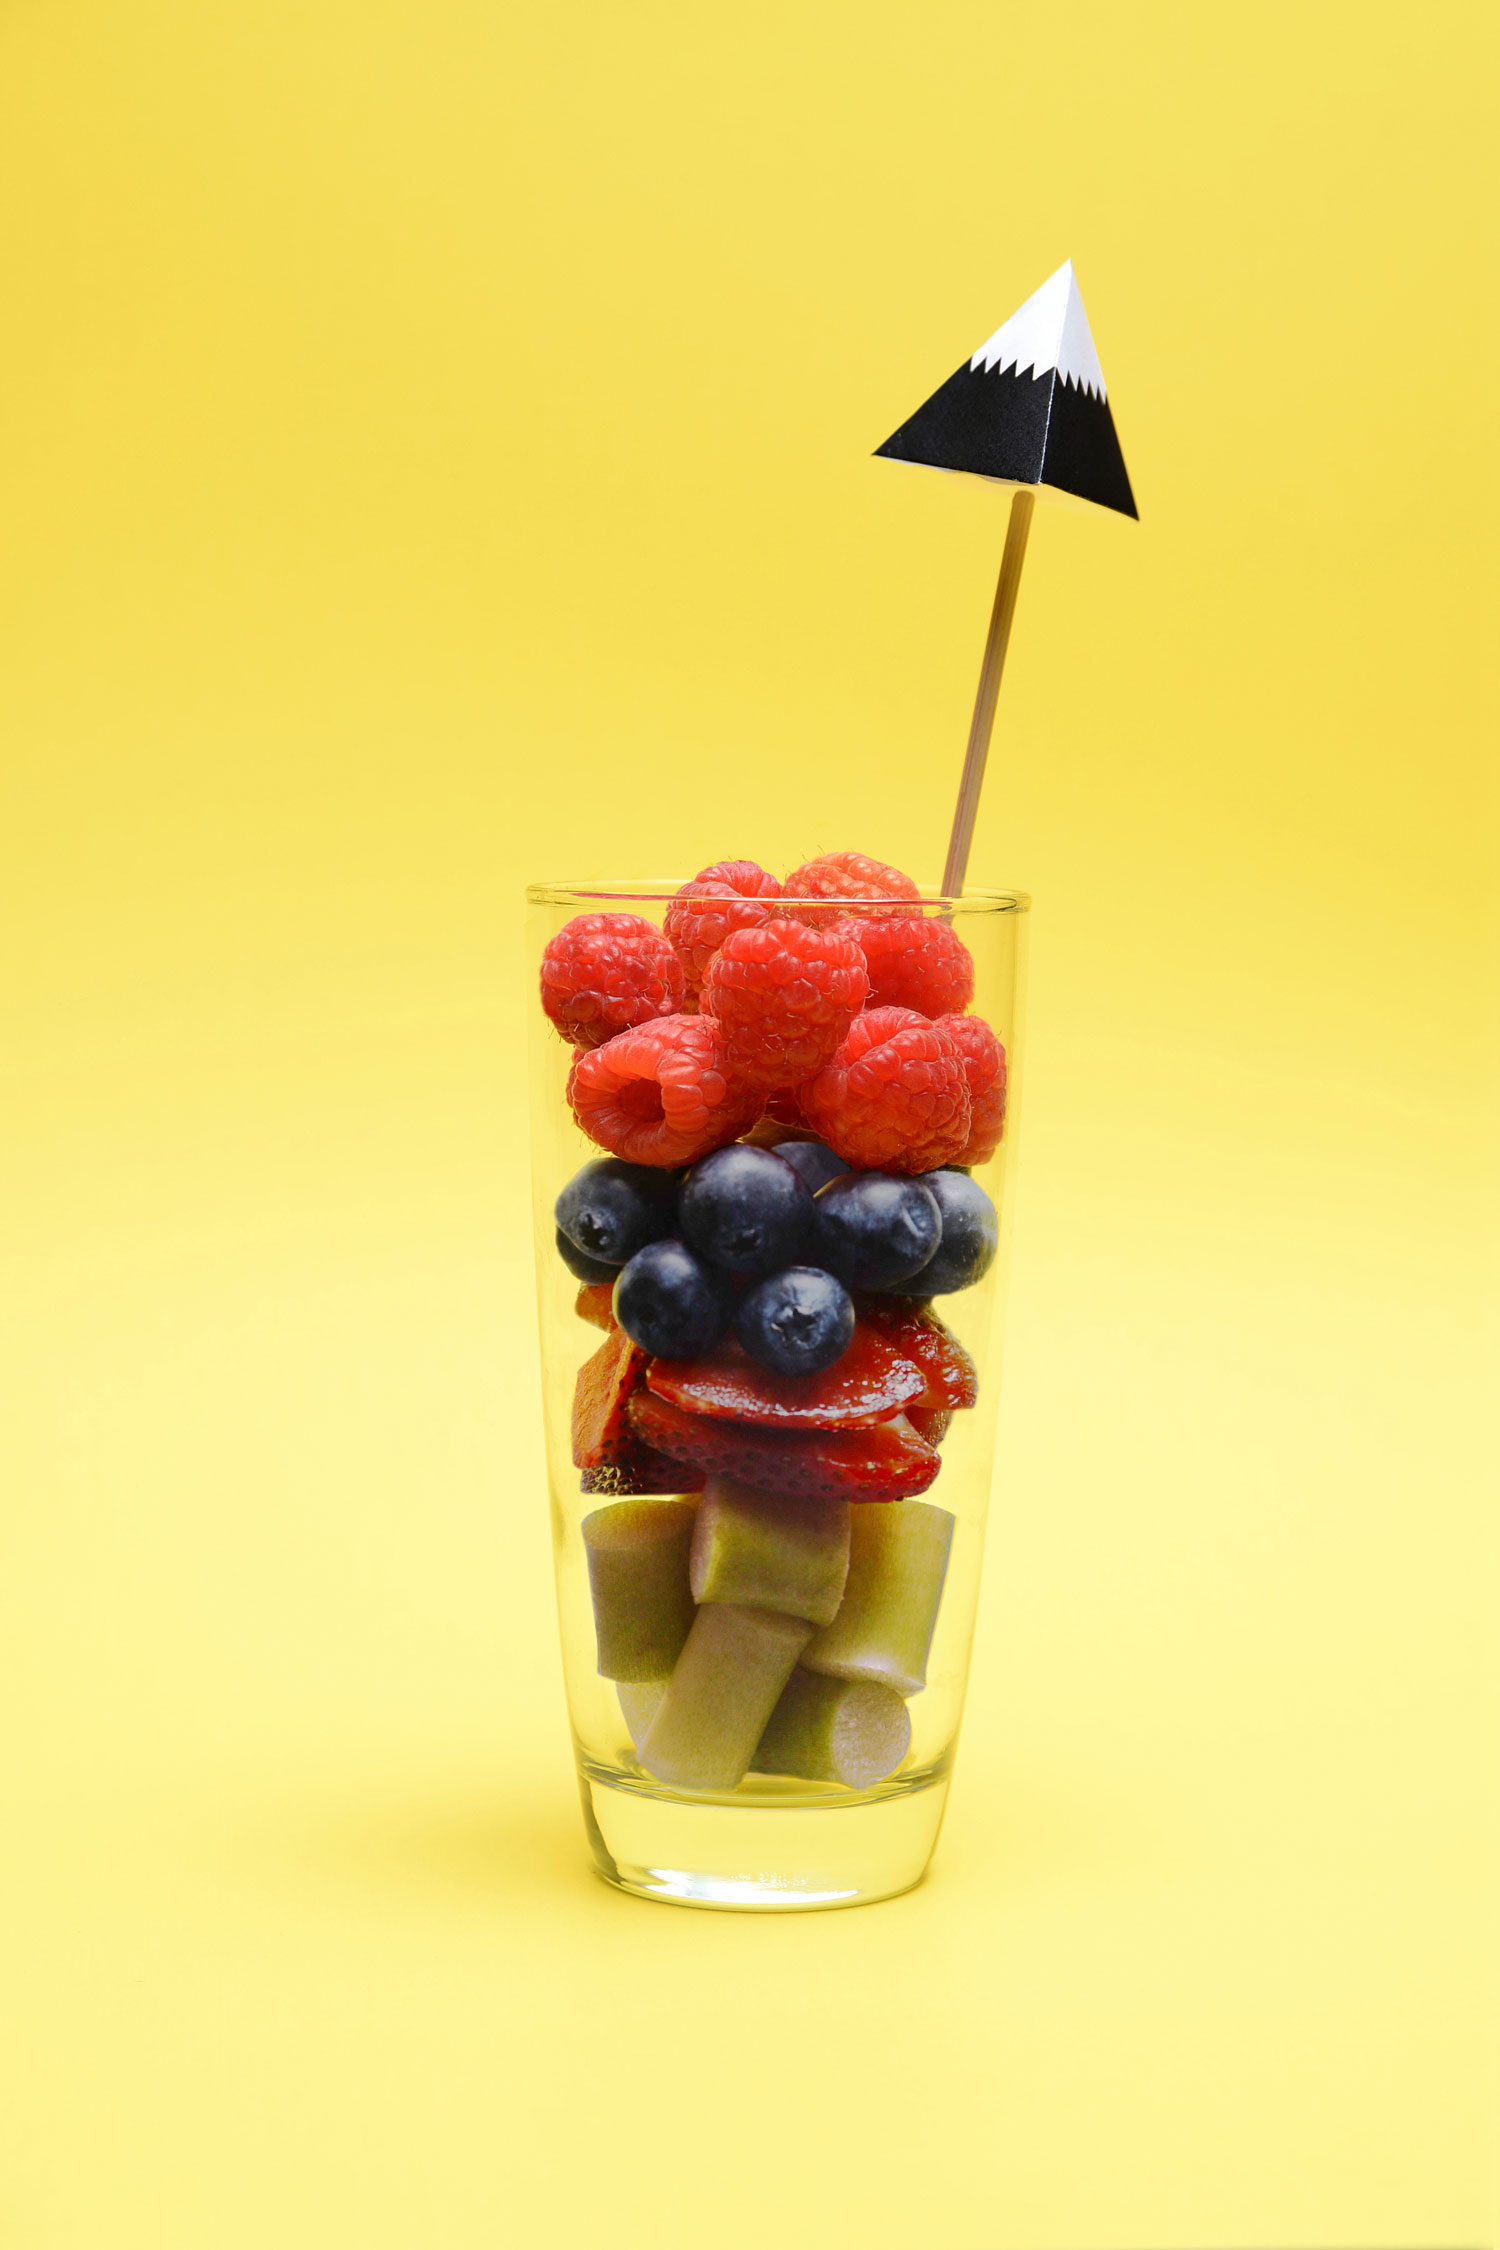 MISS-CLOUDY-jll-photograpahies-summer-cocktail-fruits-berrie-berry.jpg